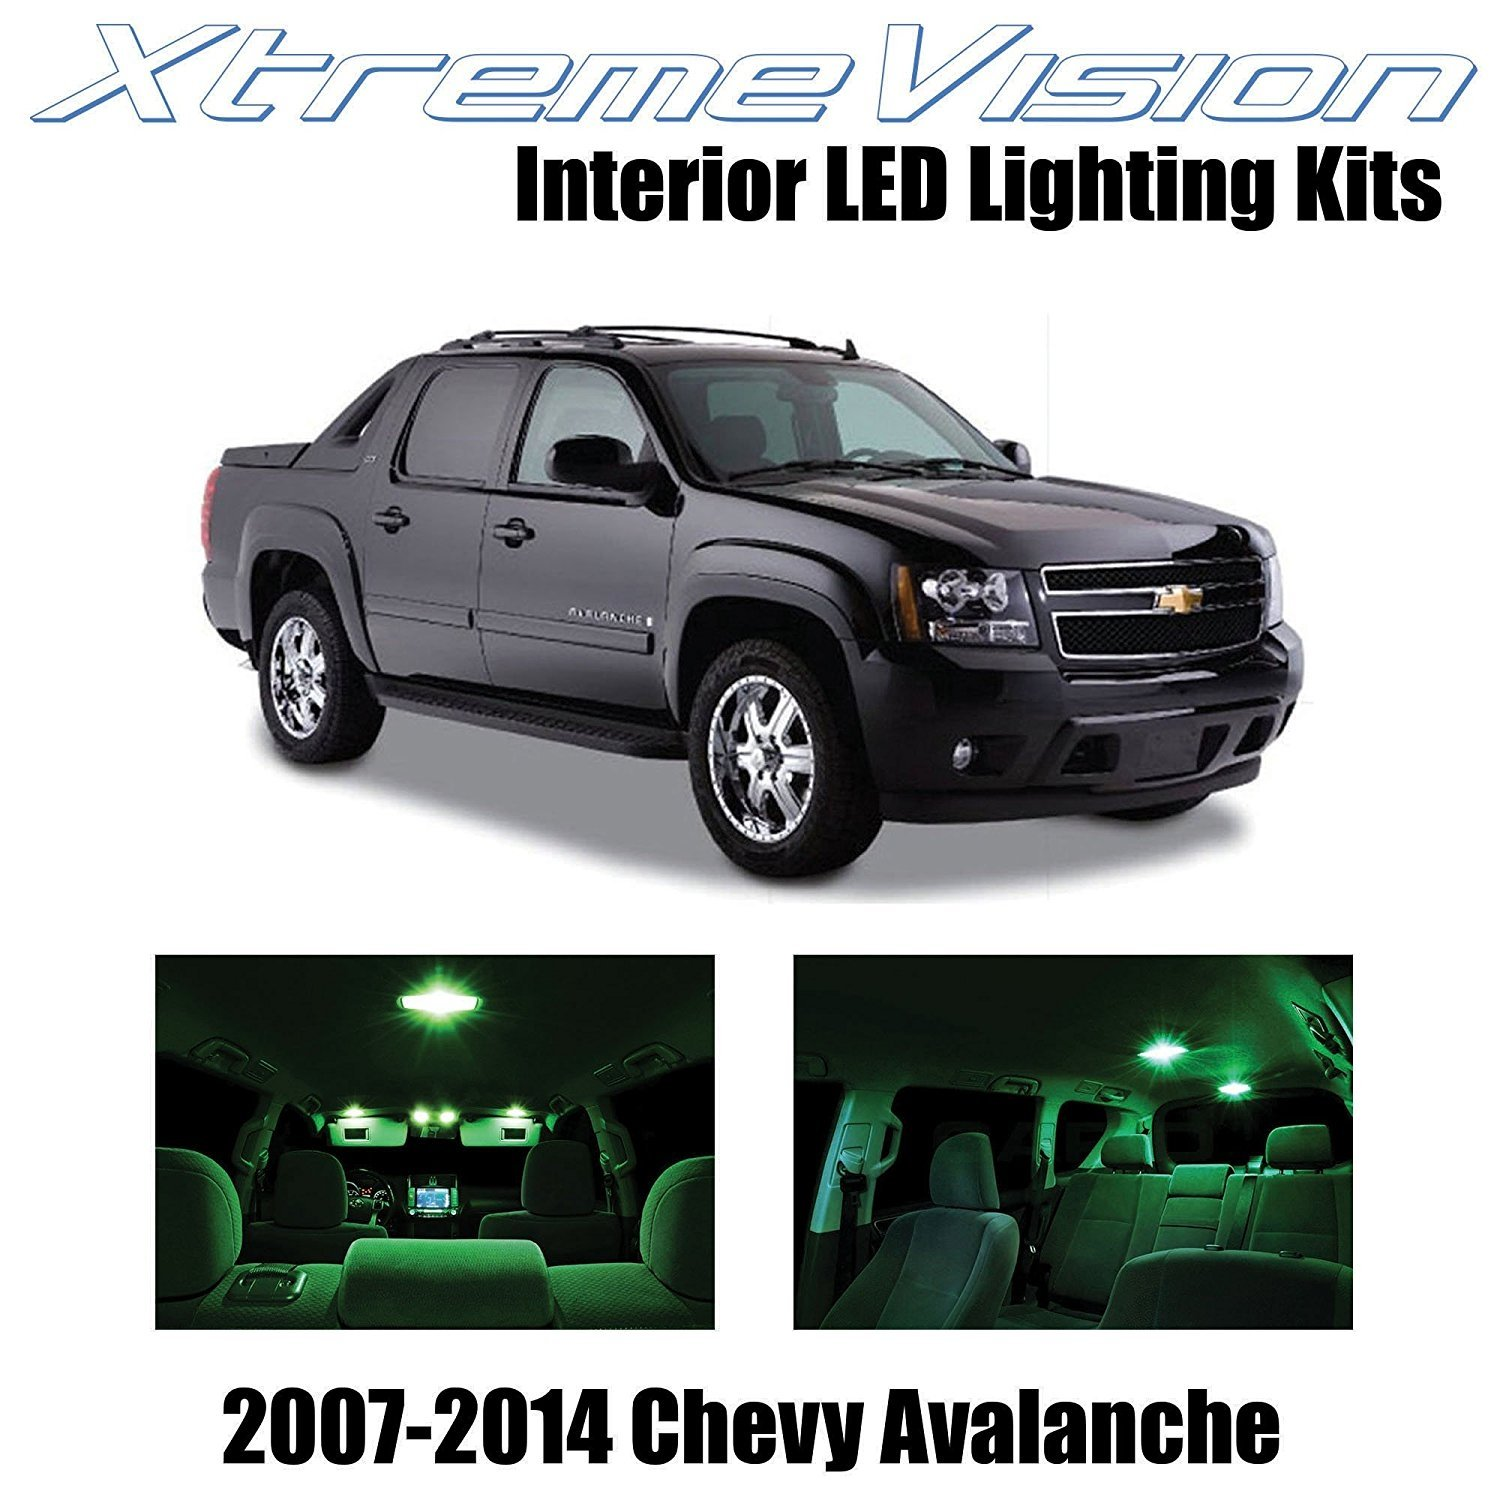 XtremeVision LED for Chevy Avalanche 2007-2014 (14 Pieces) Green Premium Interior LED Kit Package + Installation Tool